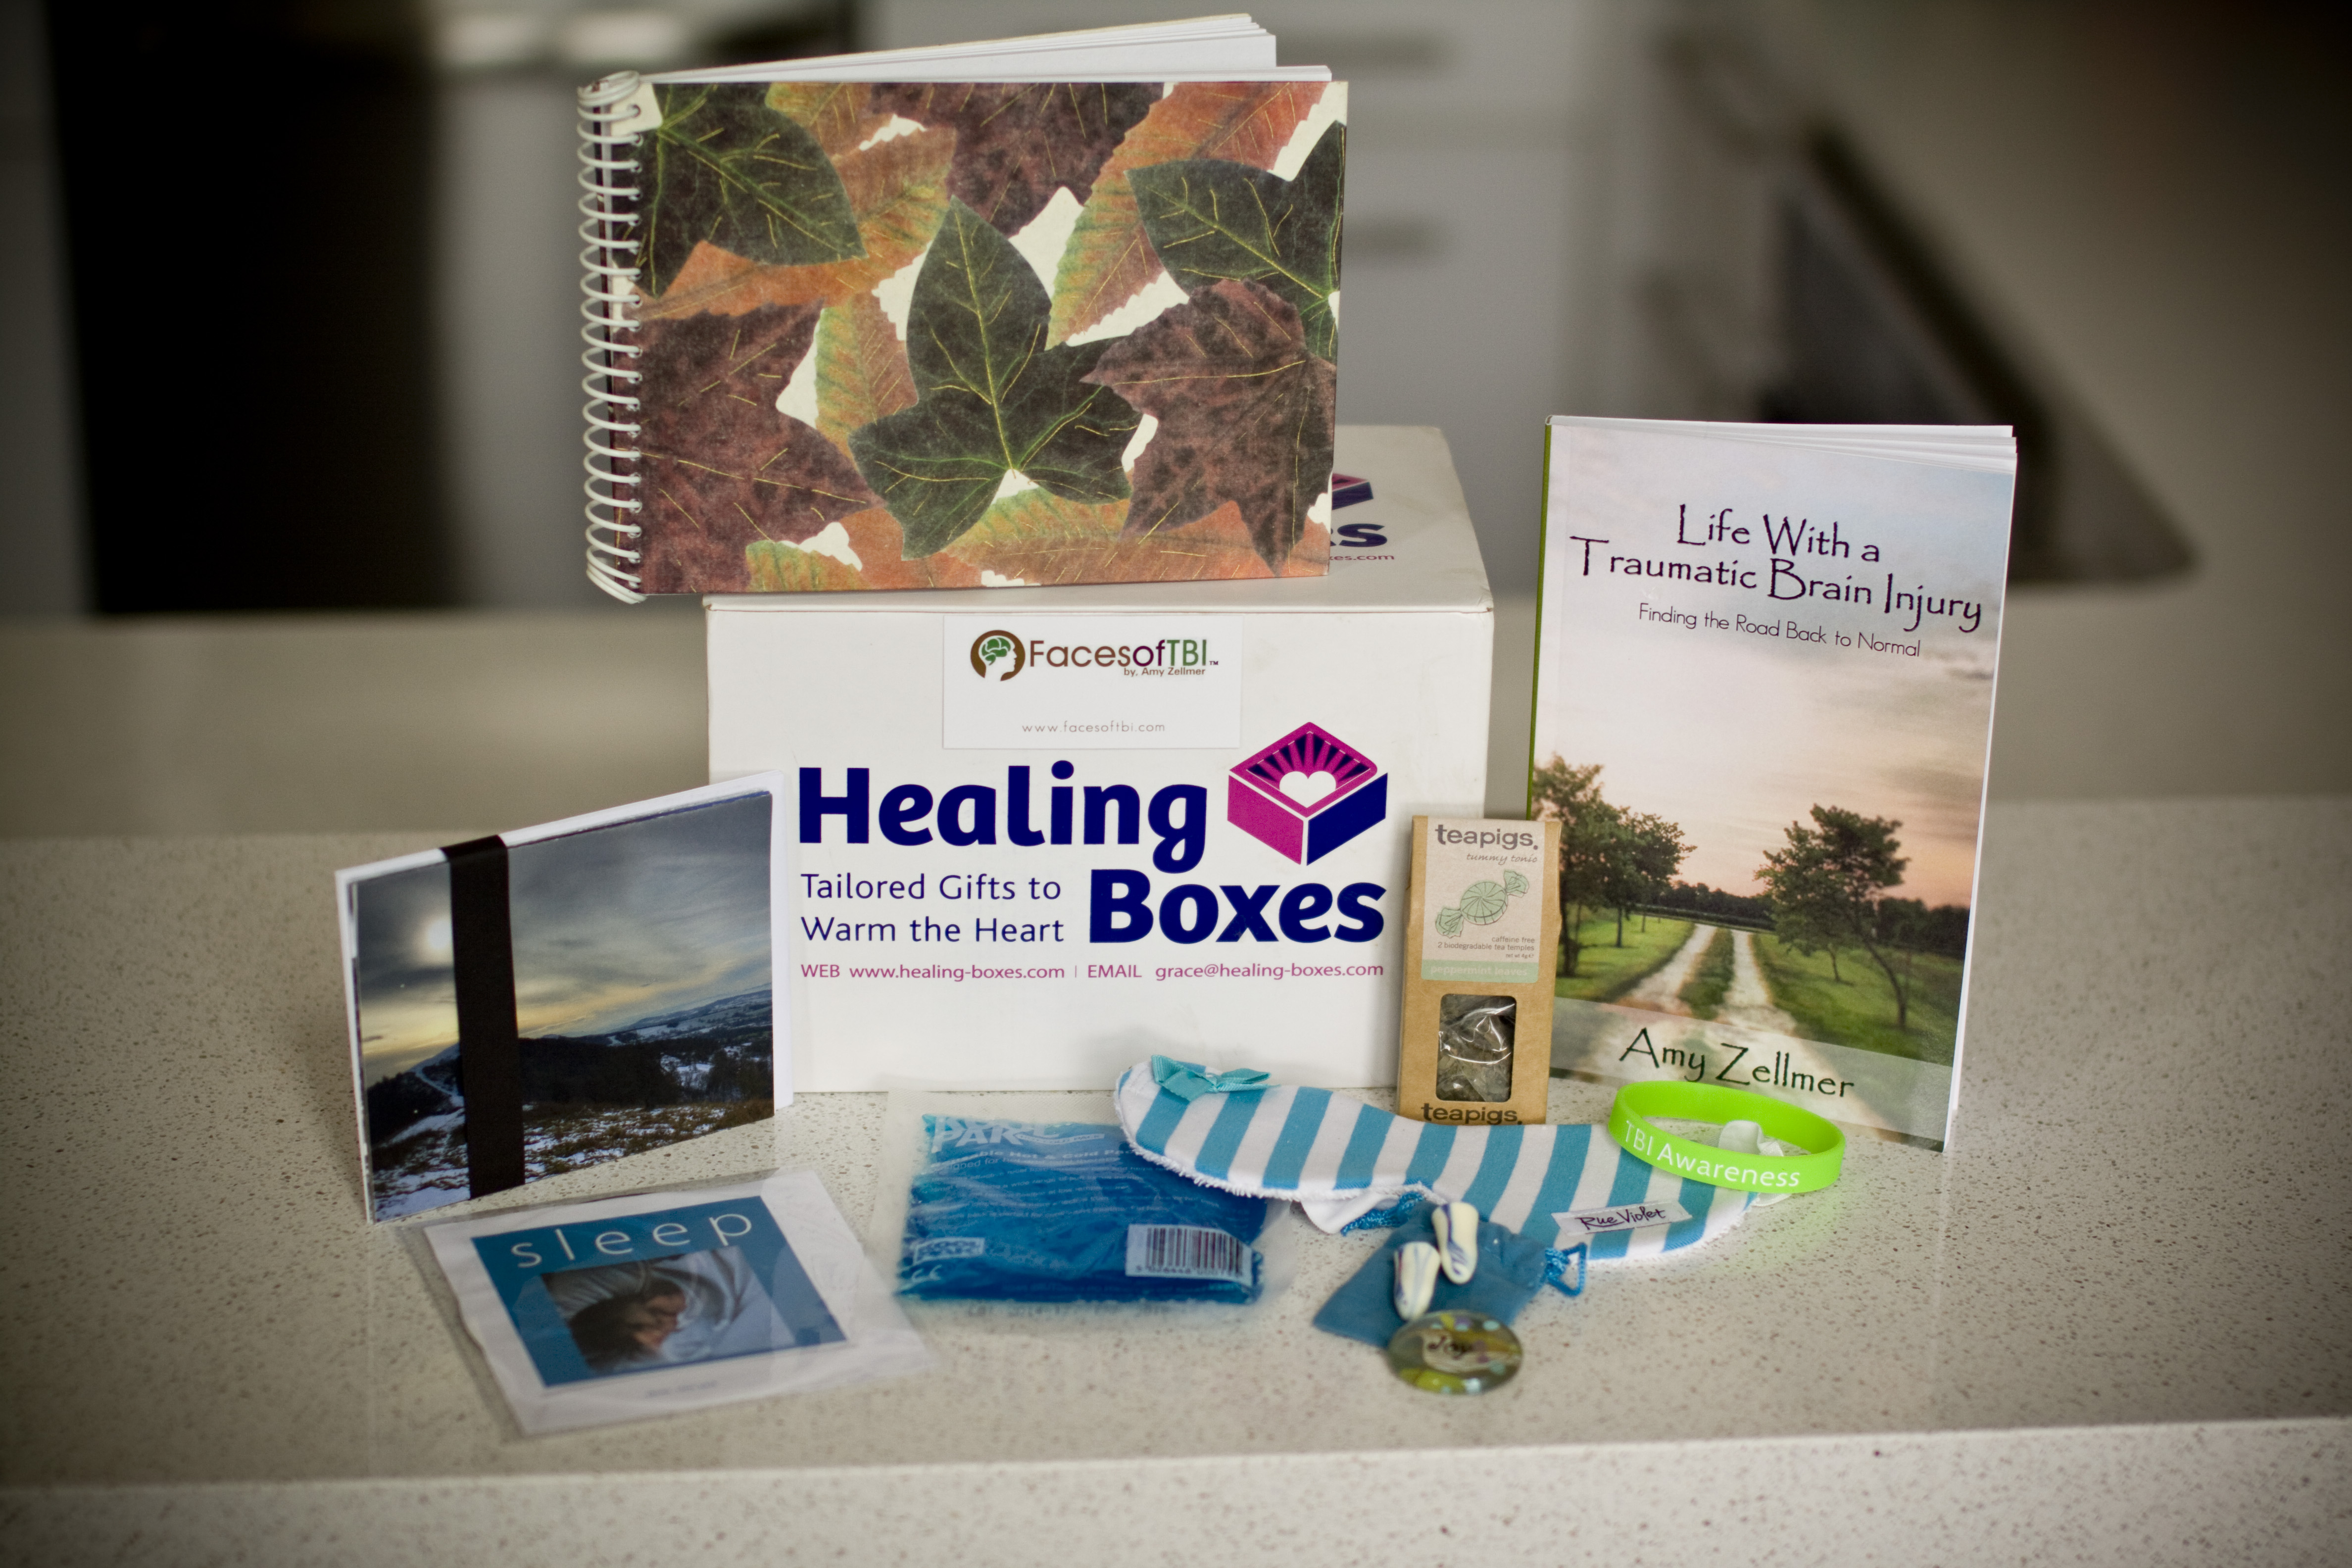 Healing Boxes, traumatic brain incj